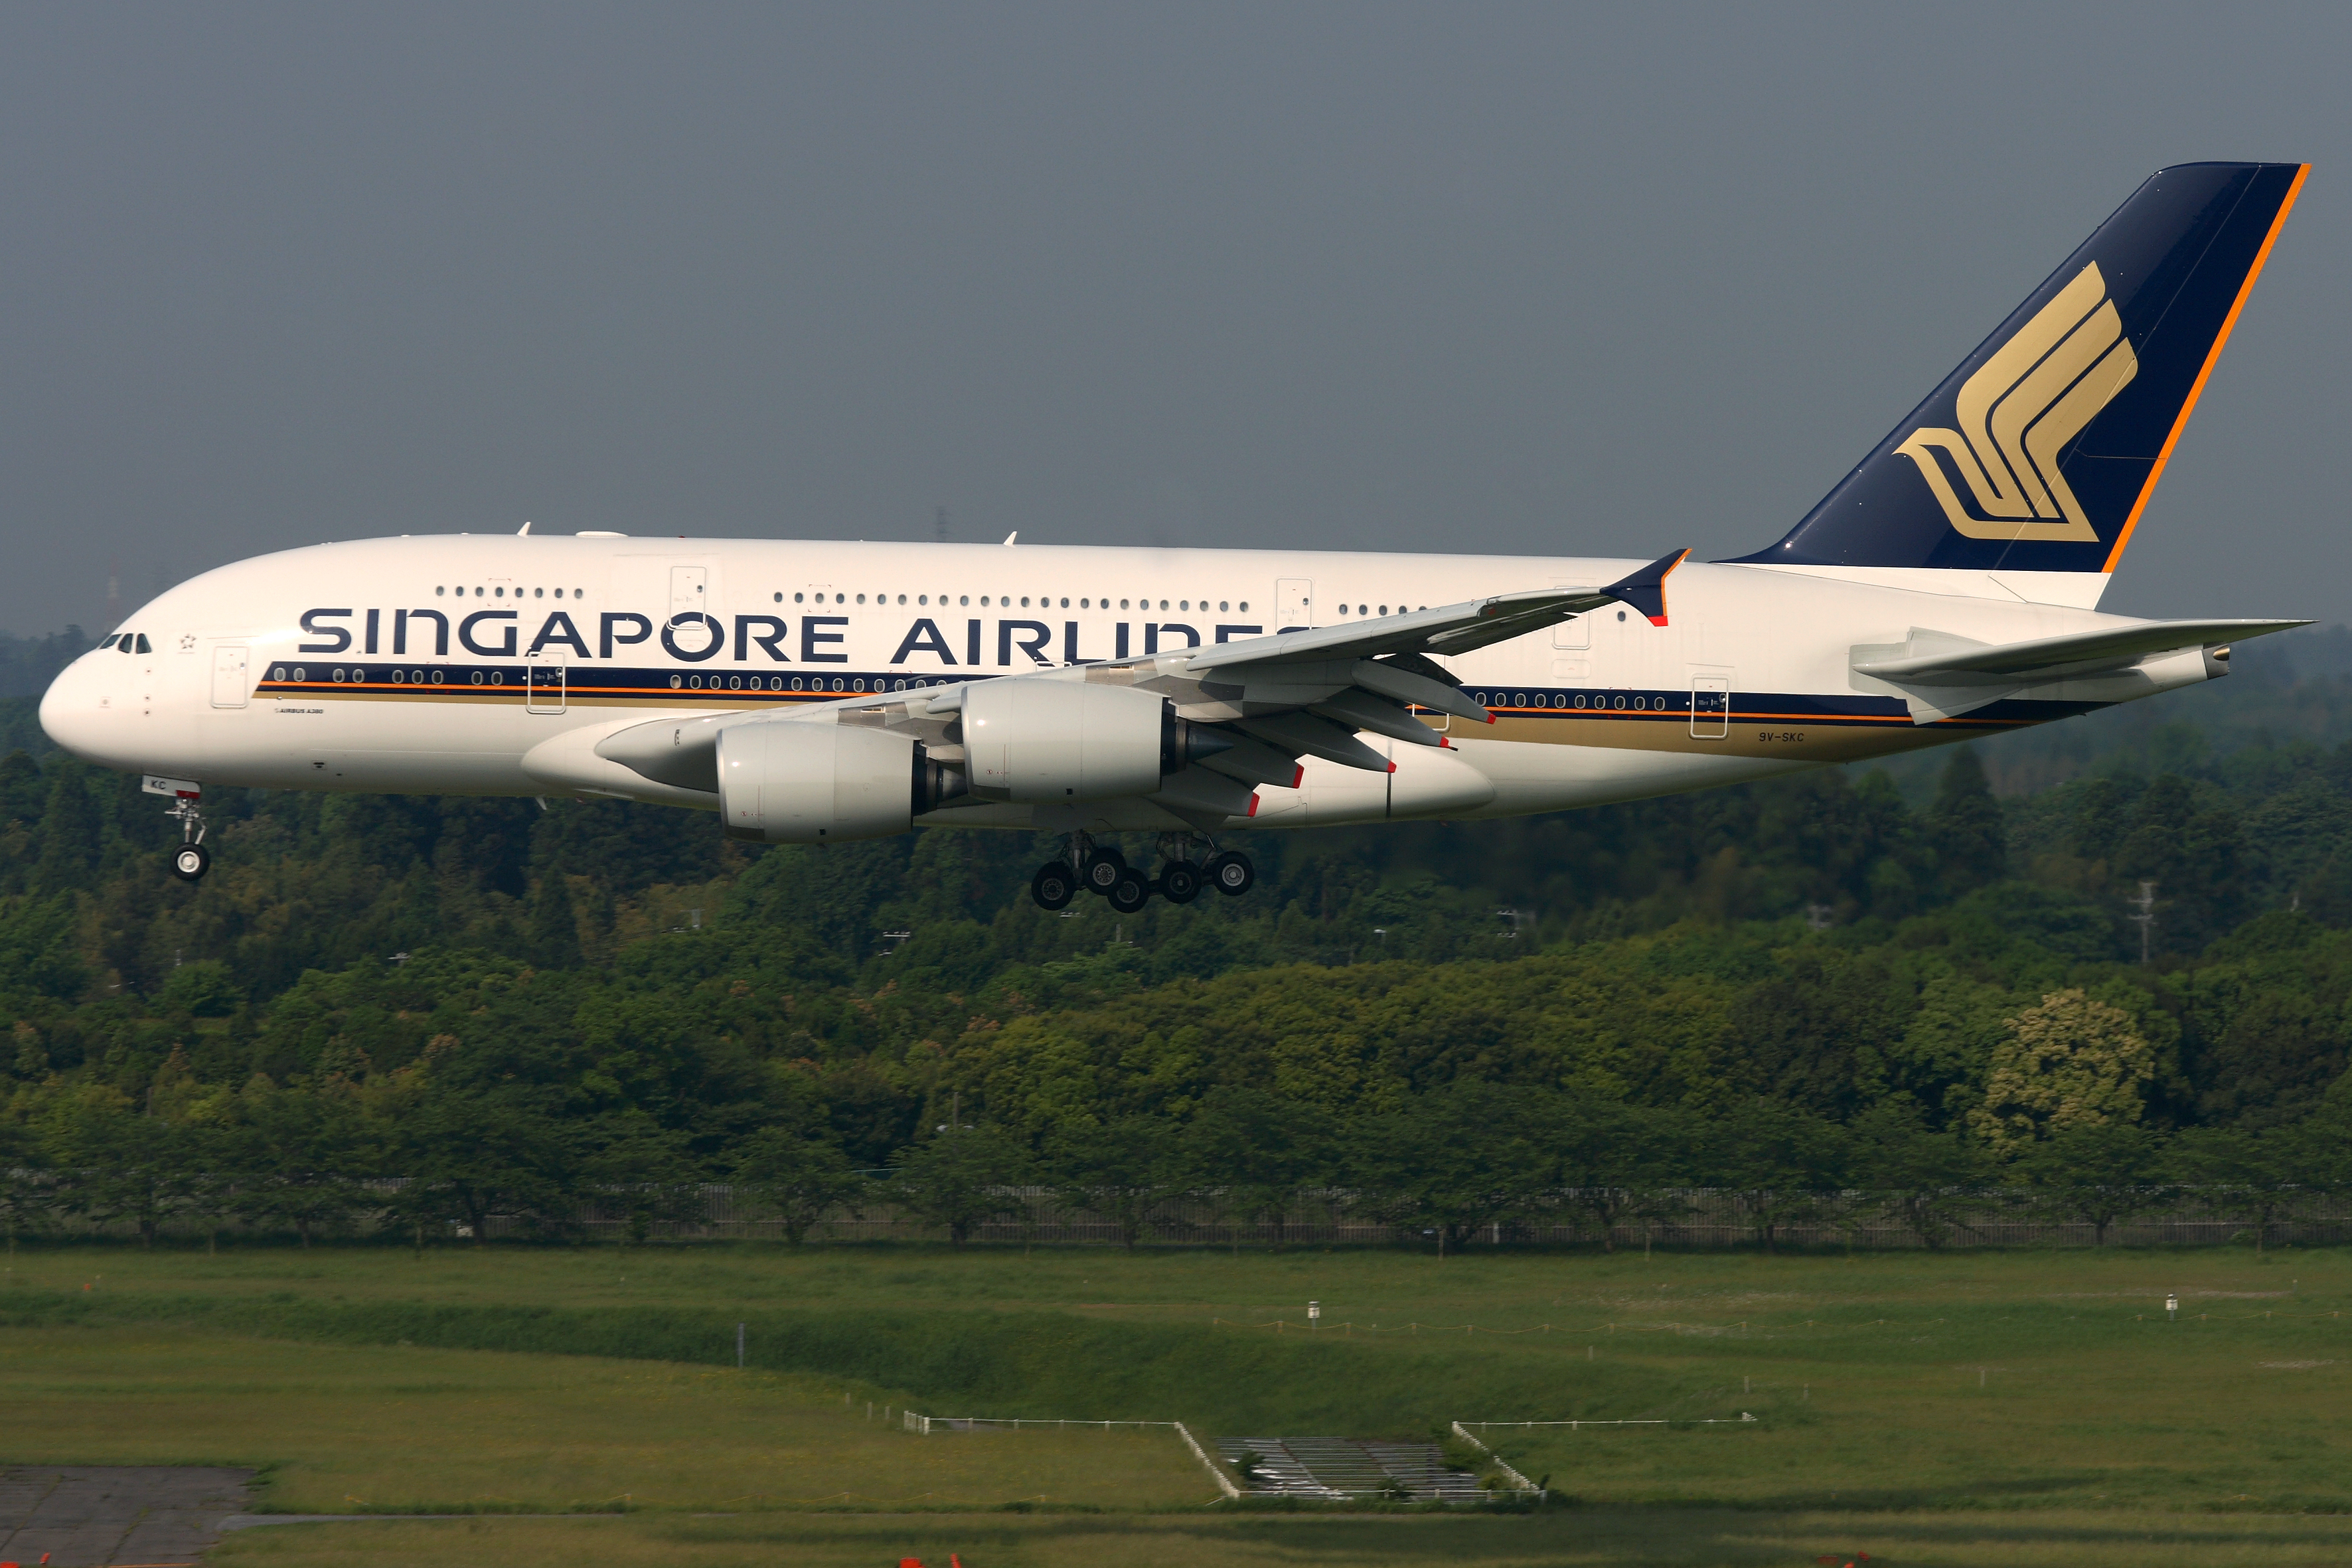 Singapore Airlines is the first major airline in Asia to tap the global debt markets in 2021, following a rush of deals in the second half of 2020.